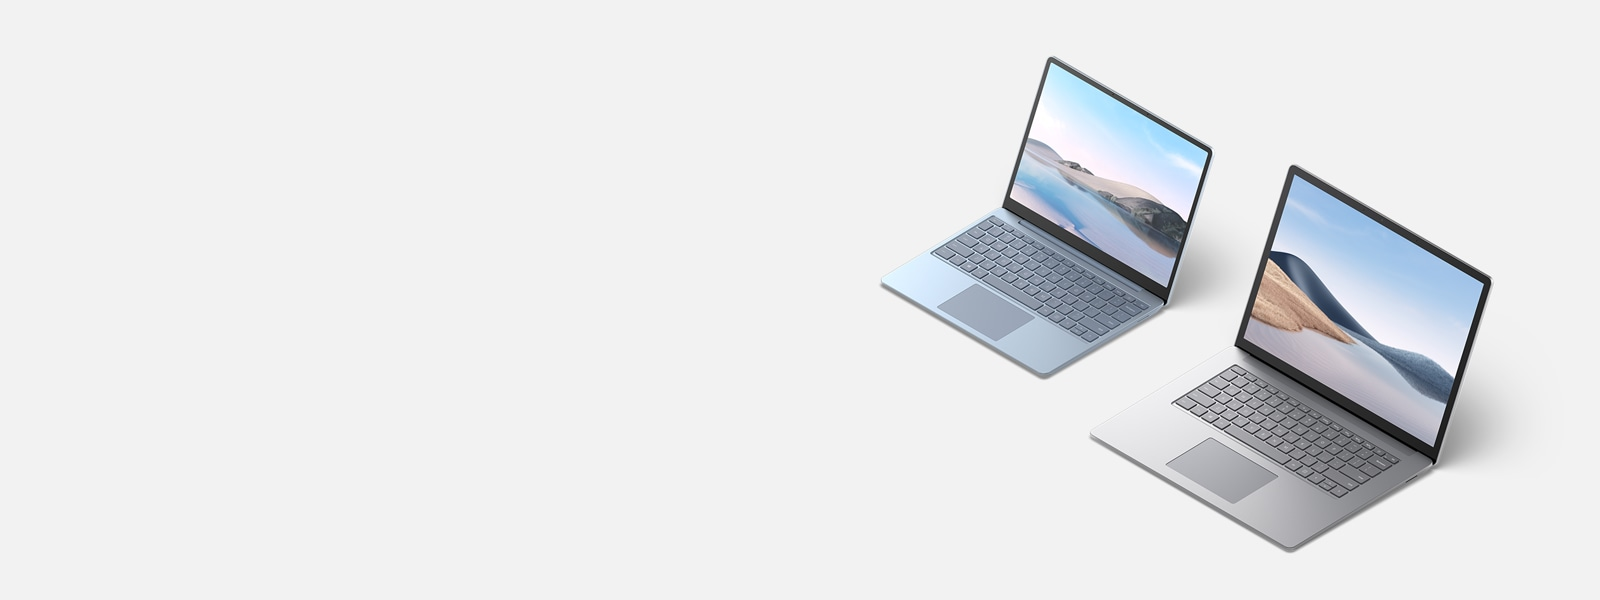 Surface Laptop 4 15inch と Surface Laptop Go